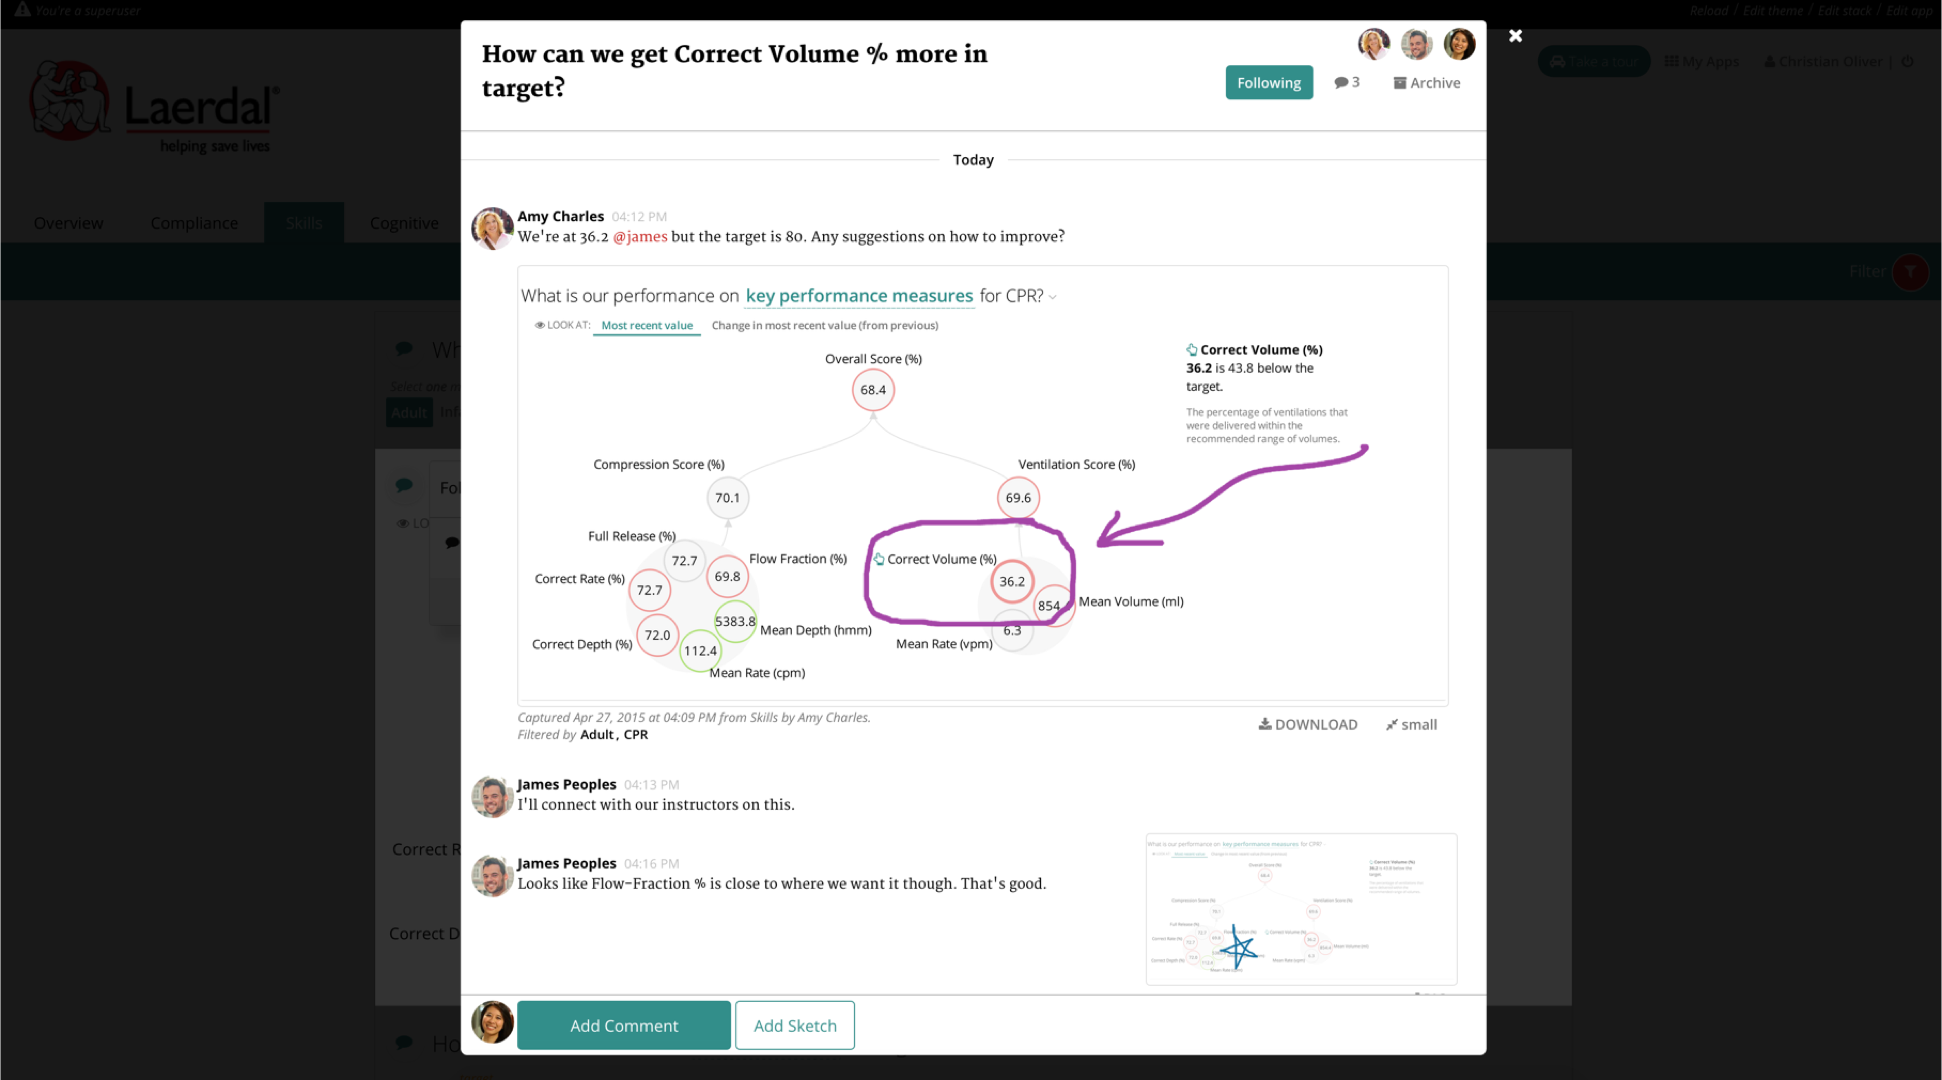 Juicebox's discussion feature lets users capture, discuss, and share the insights they find in the data.